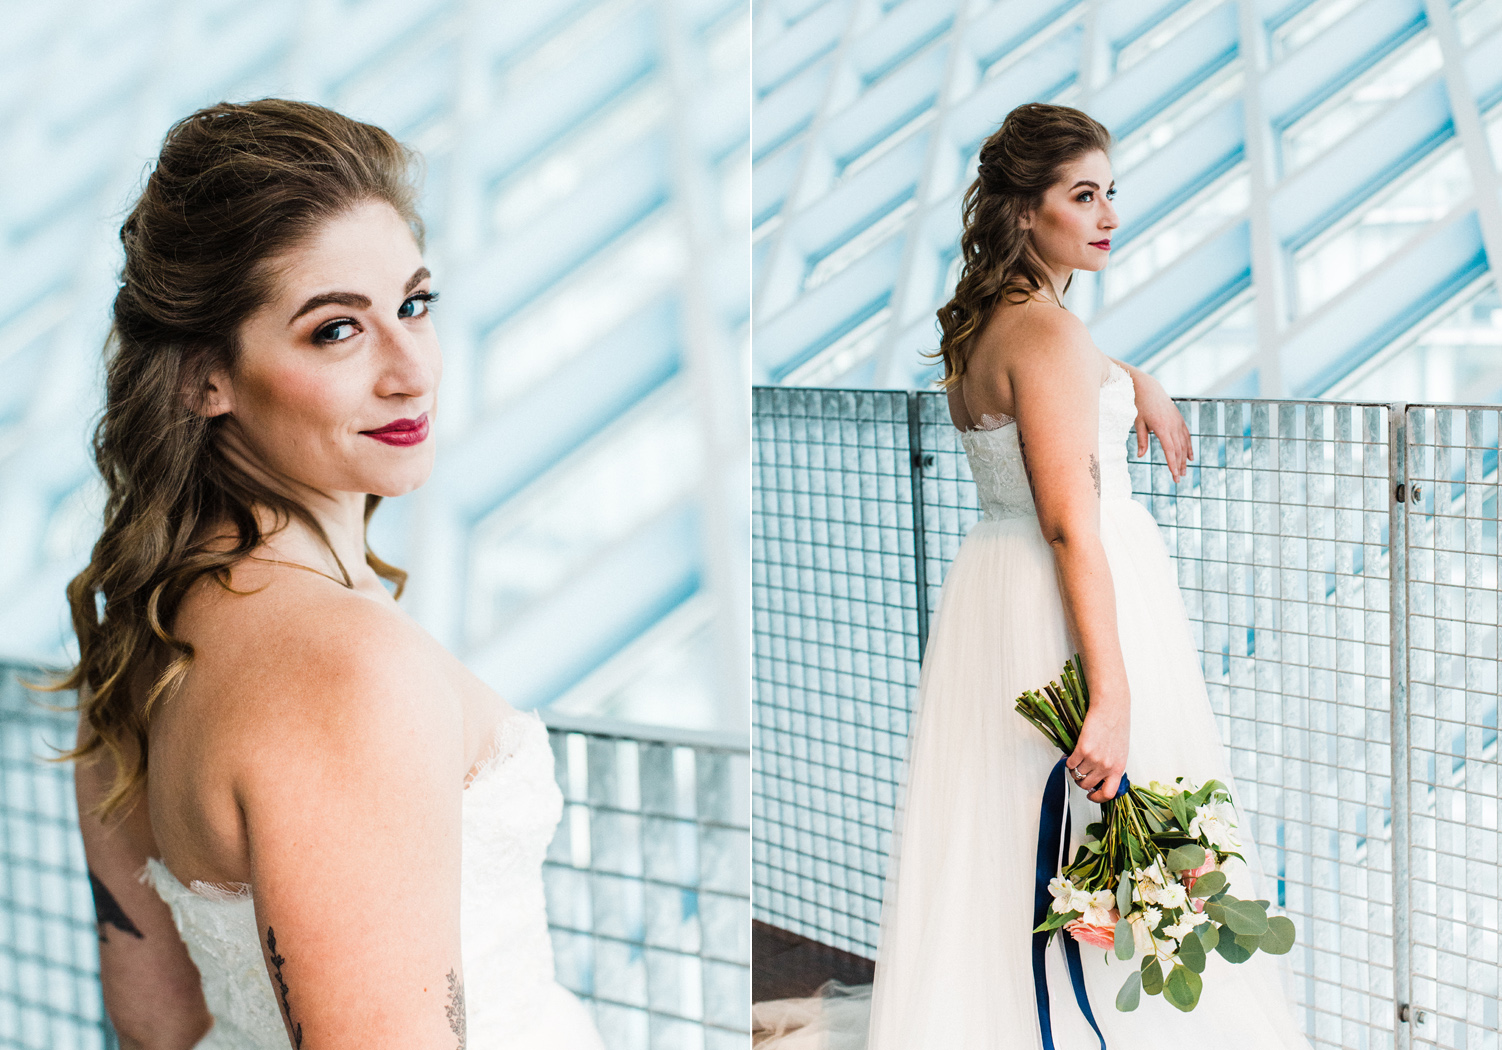 seattle public library bridal portrait photography 3.jpg